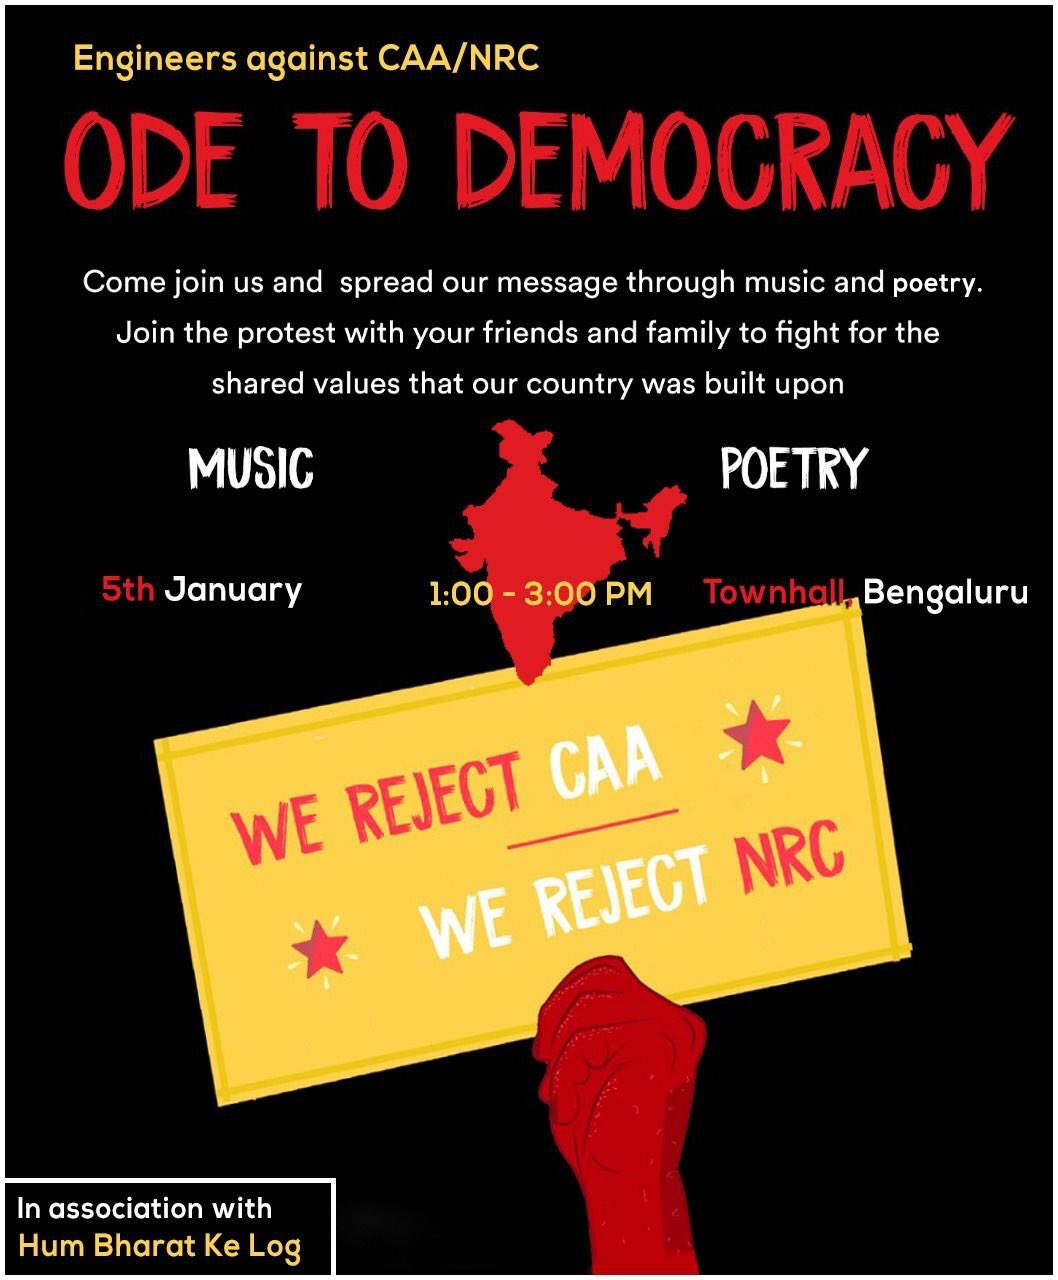 Ode to Democracy #Bangalore 1